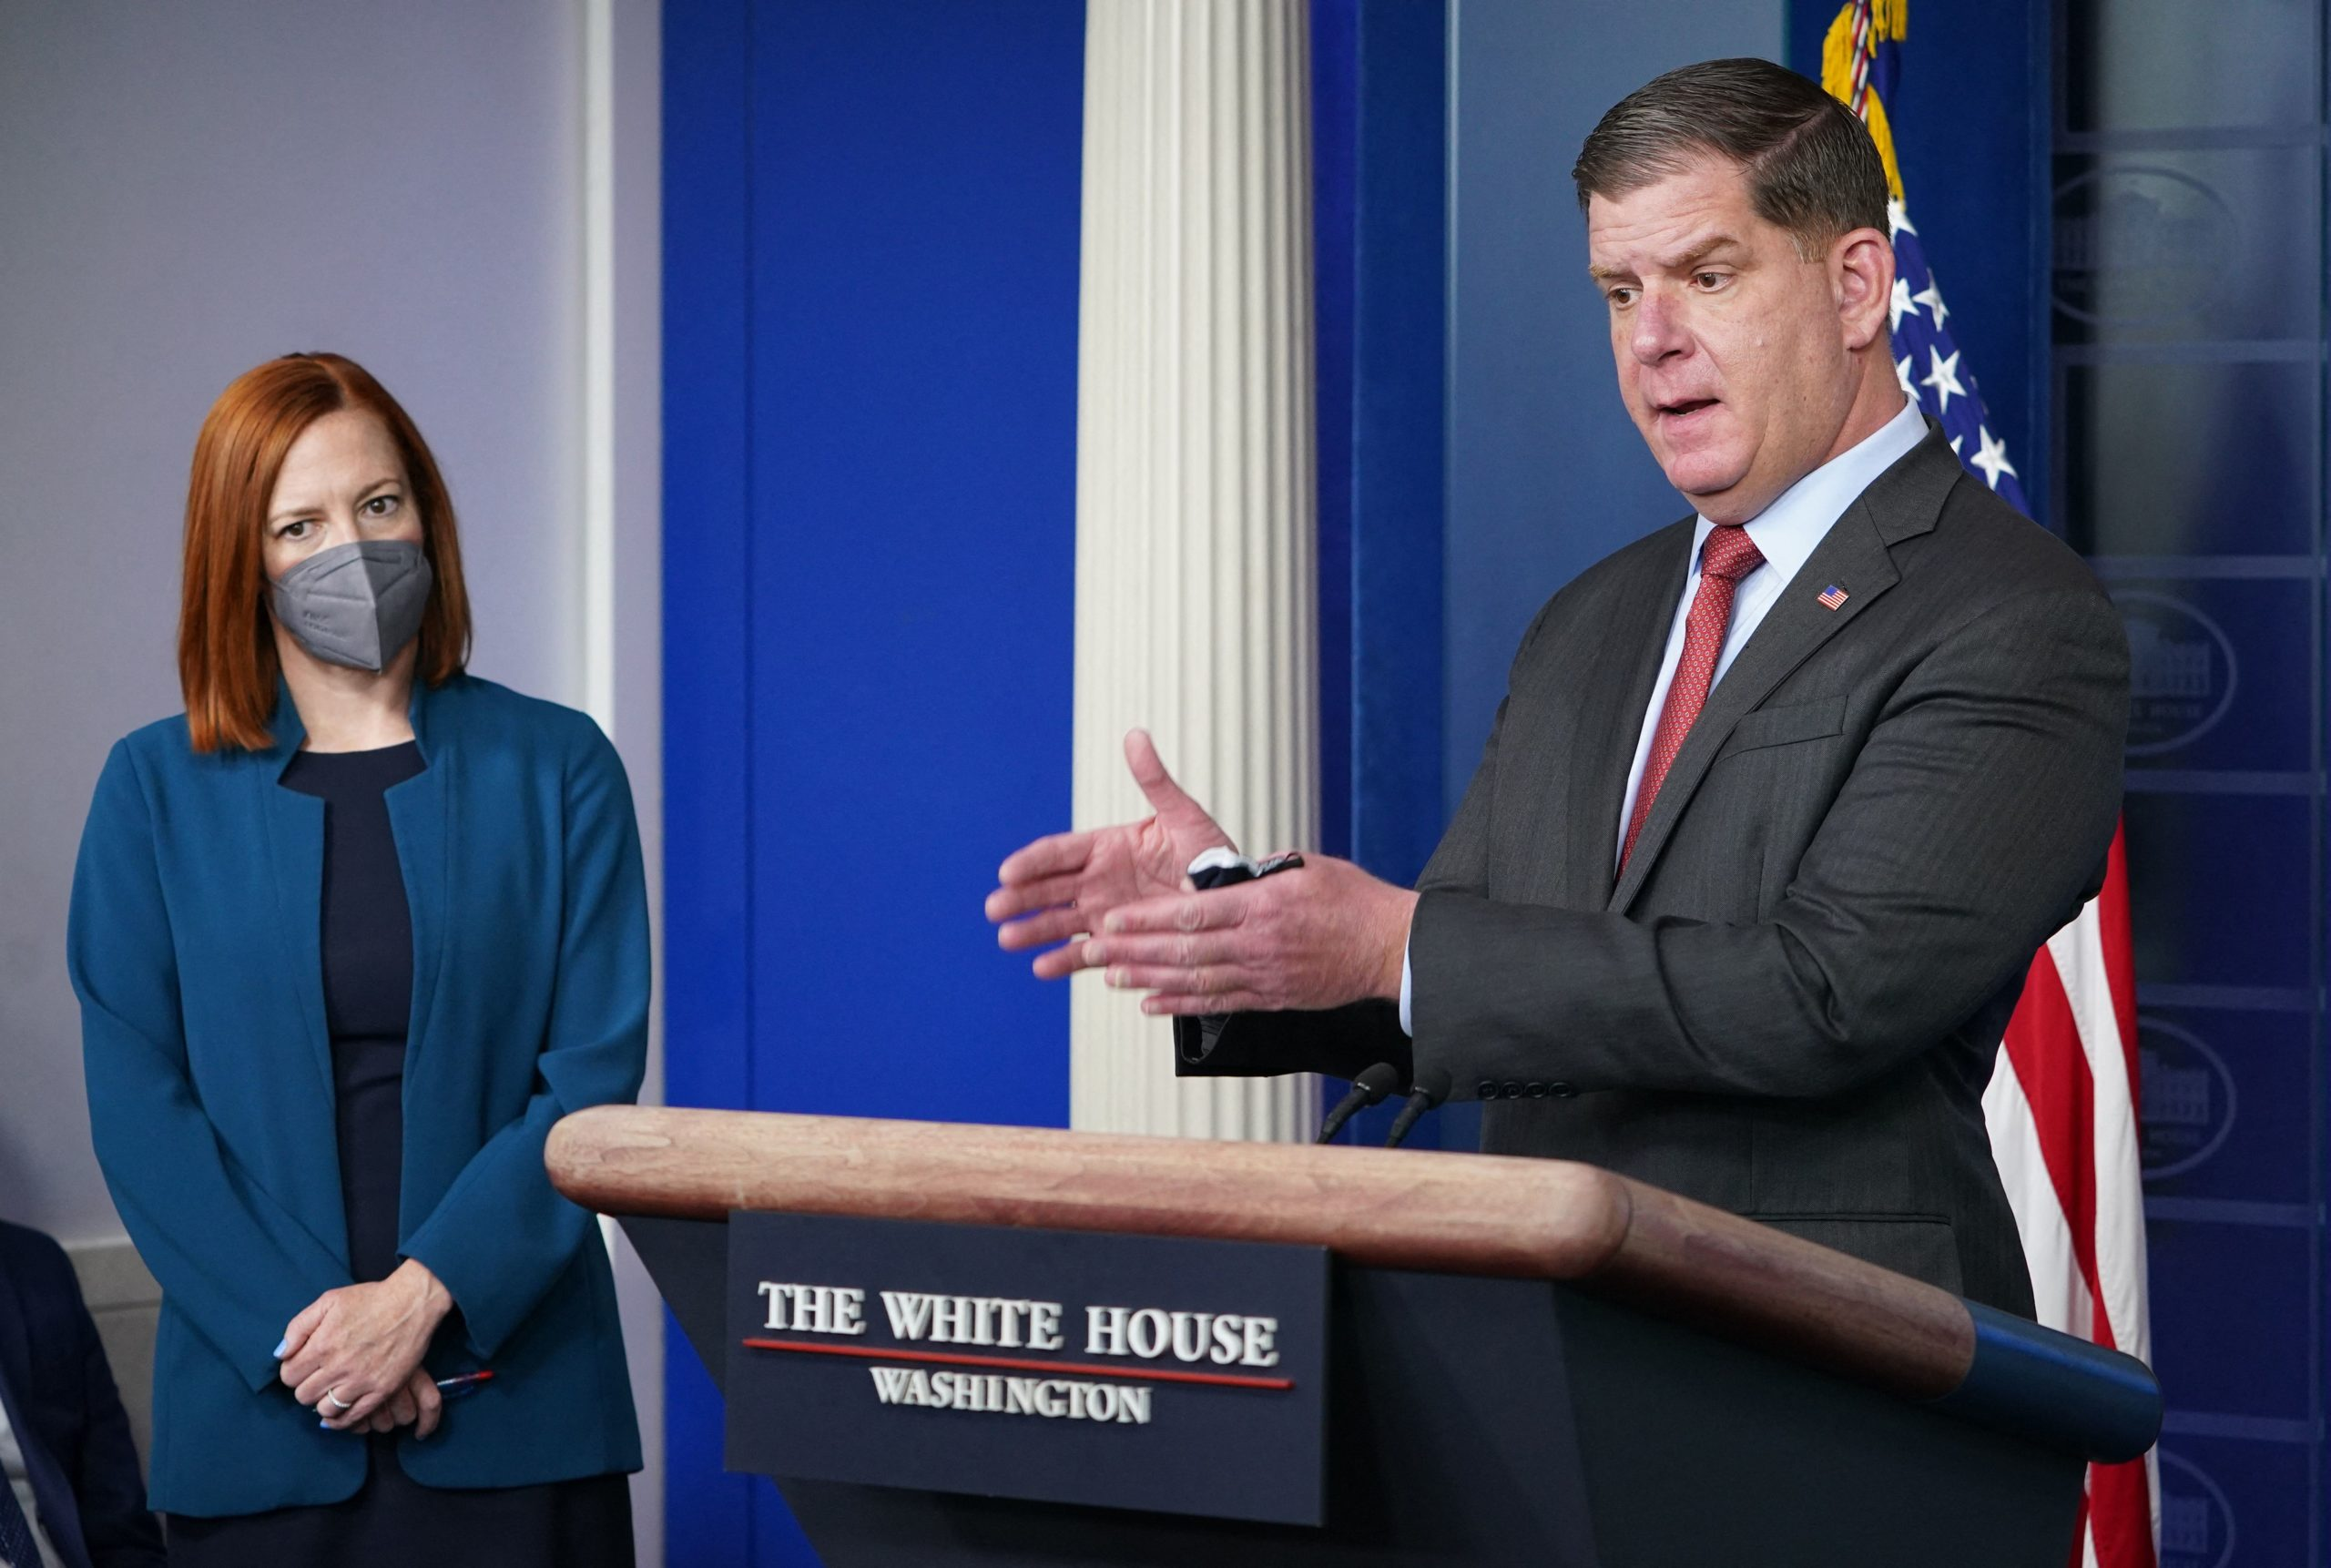 Secretary of Labor Marty Walsh speaks during a press briefing on April 2 at the White House. (Mandel Ngan/AFP via Getty Images)